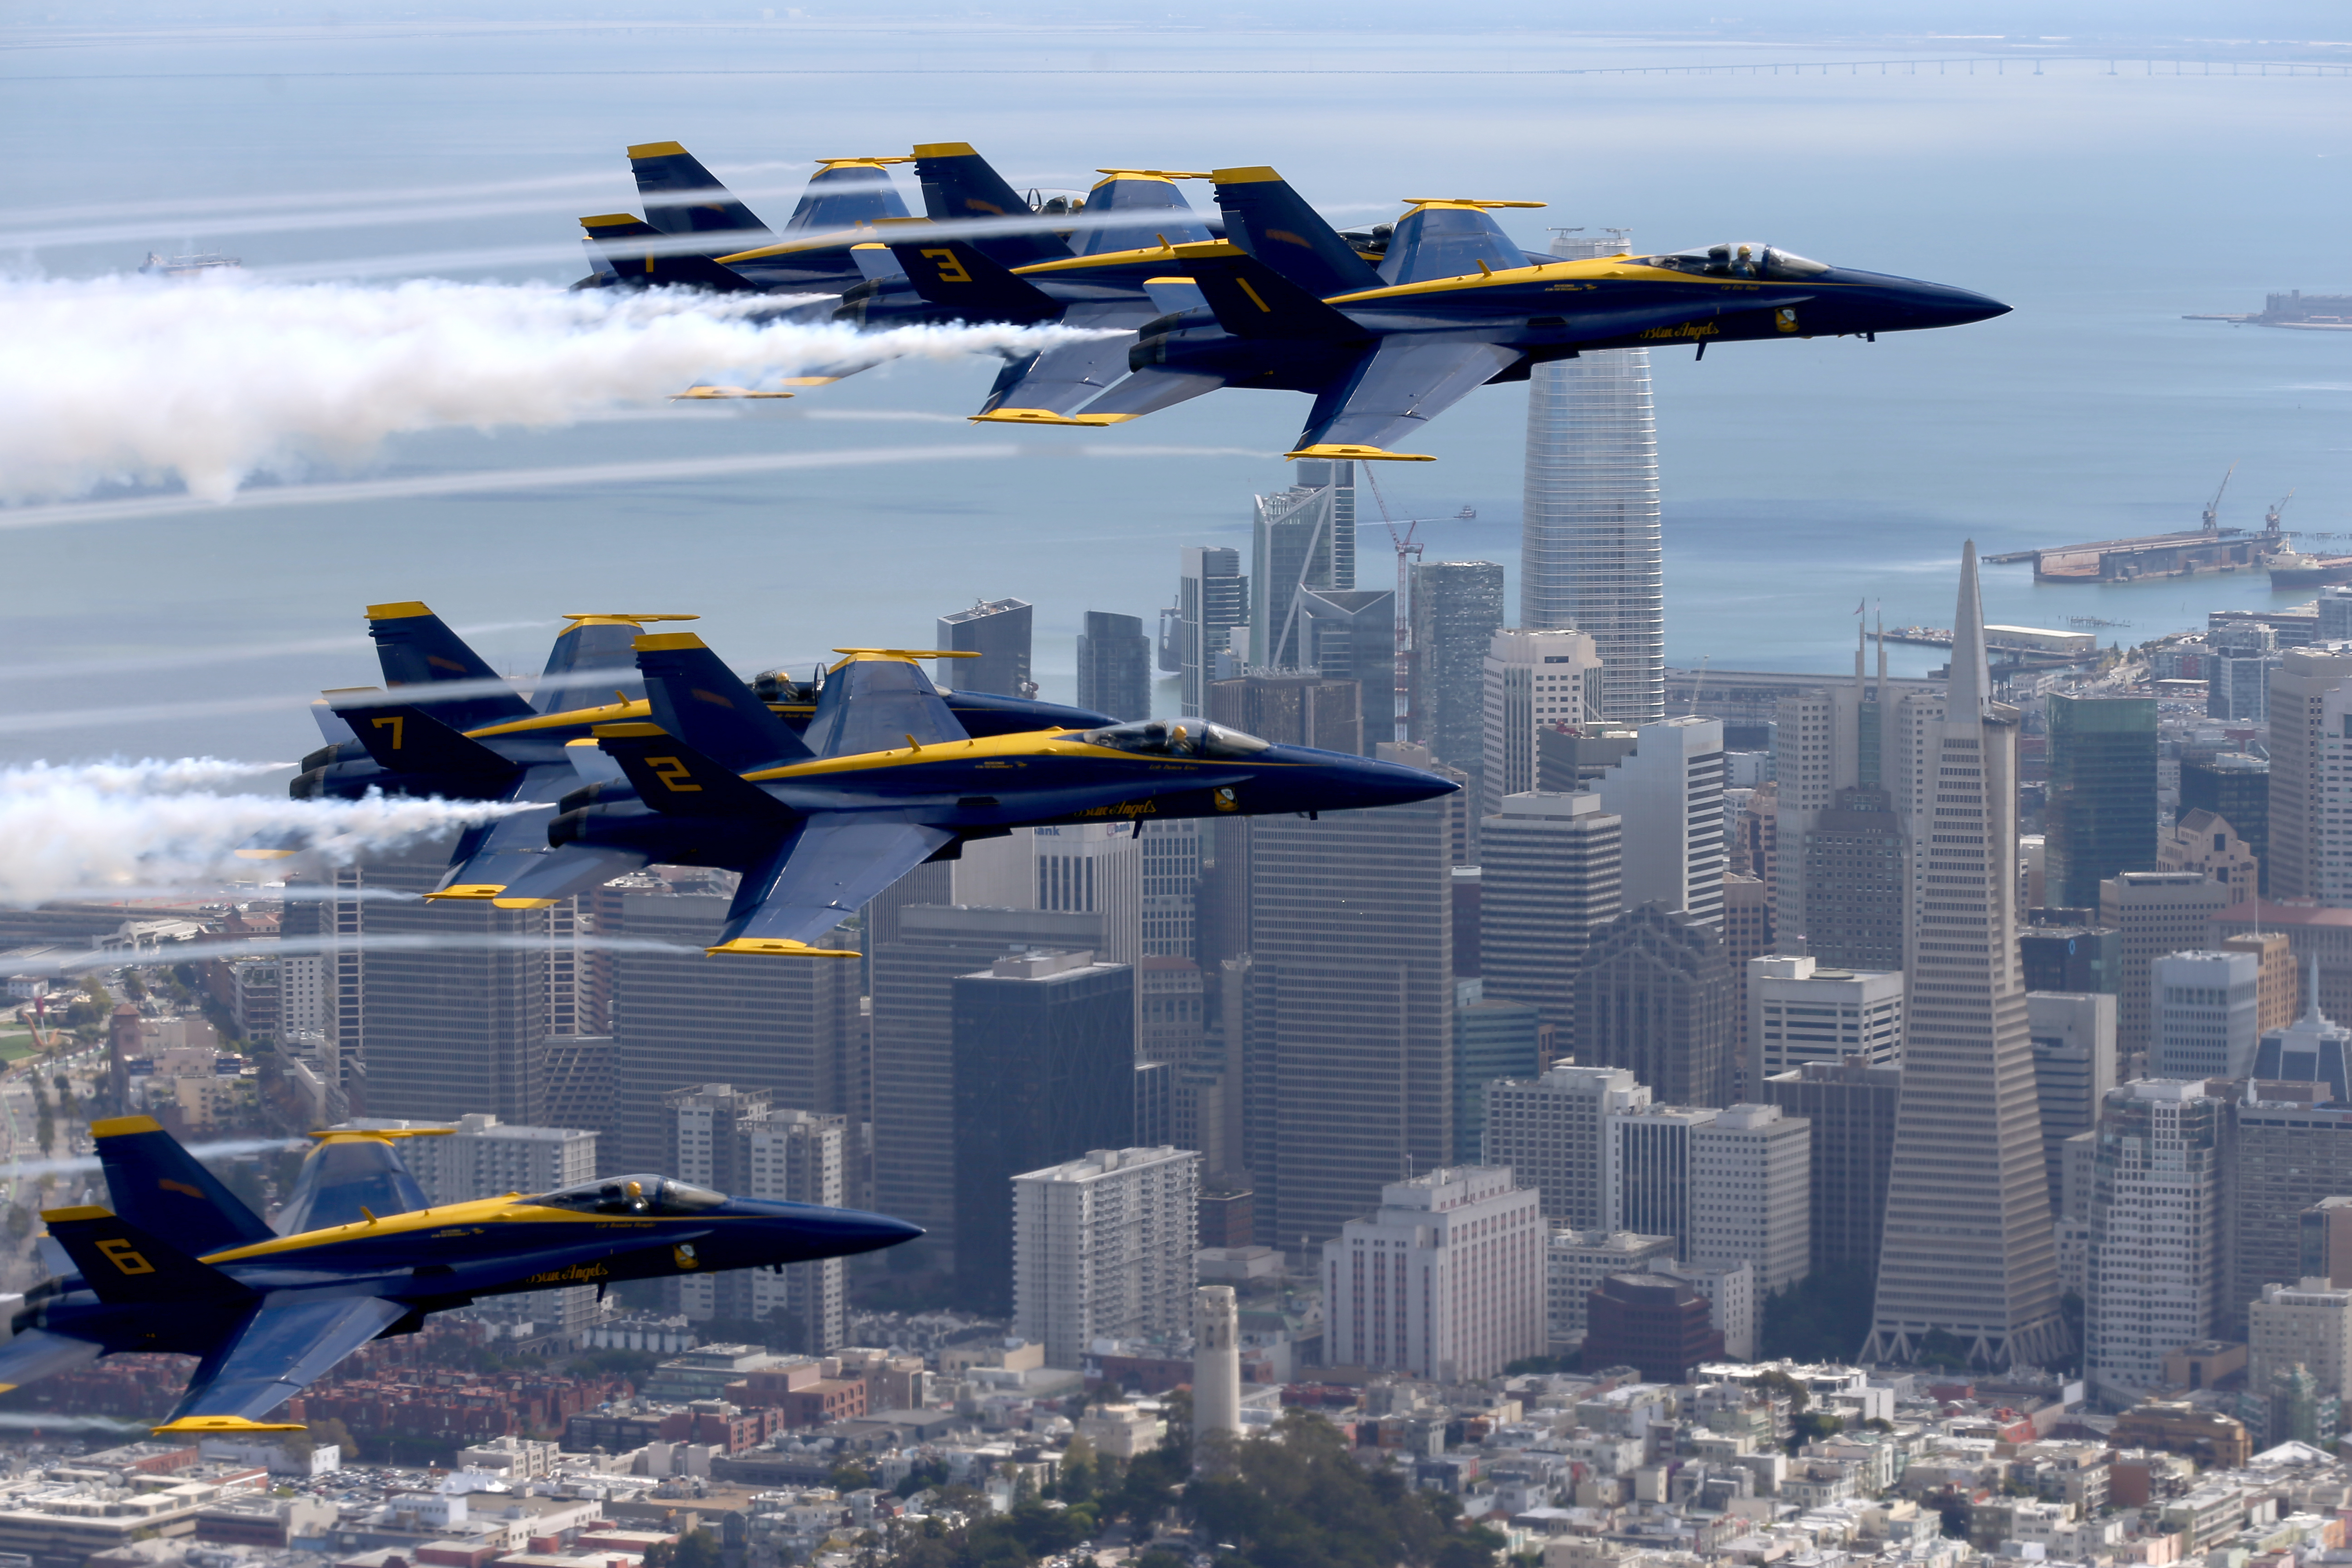 Close-up of blue and yellow fighter jets flying over San Francisco, with tall buildings and the bay below.